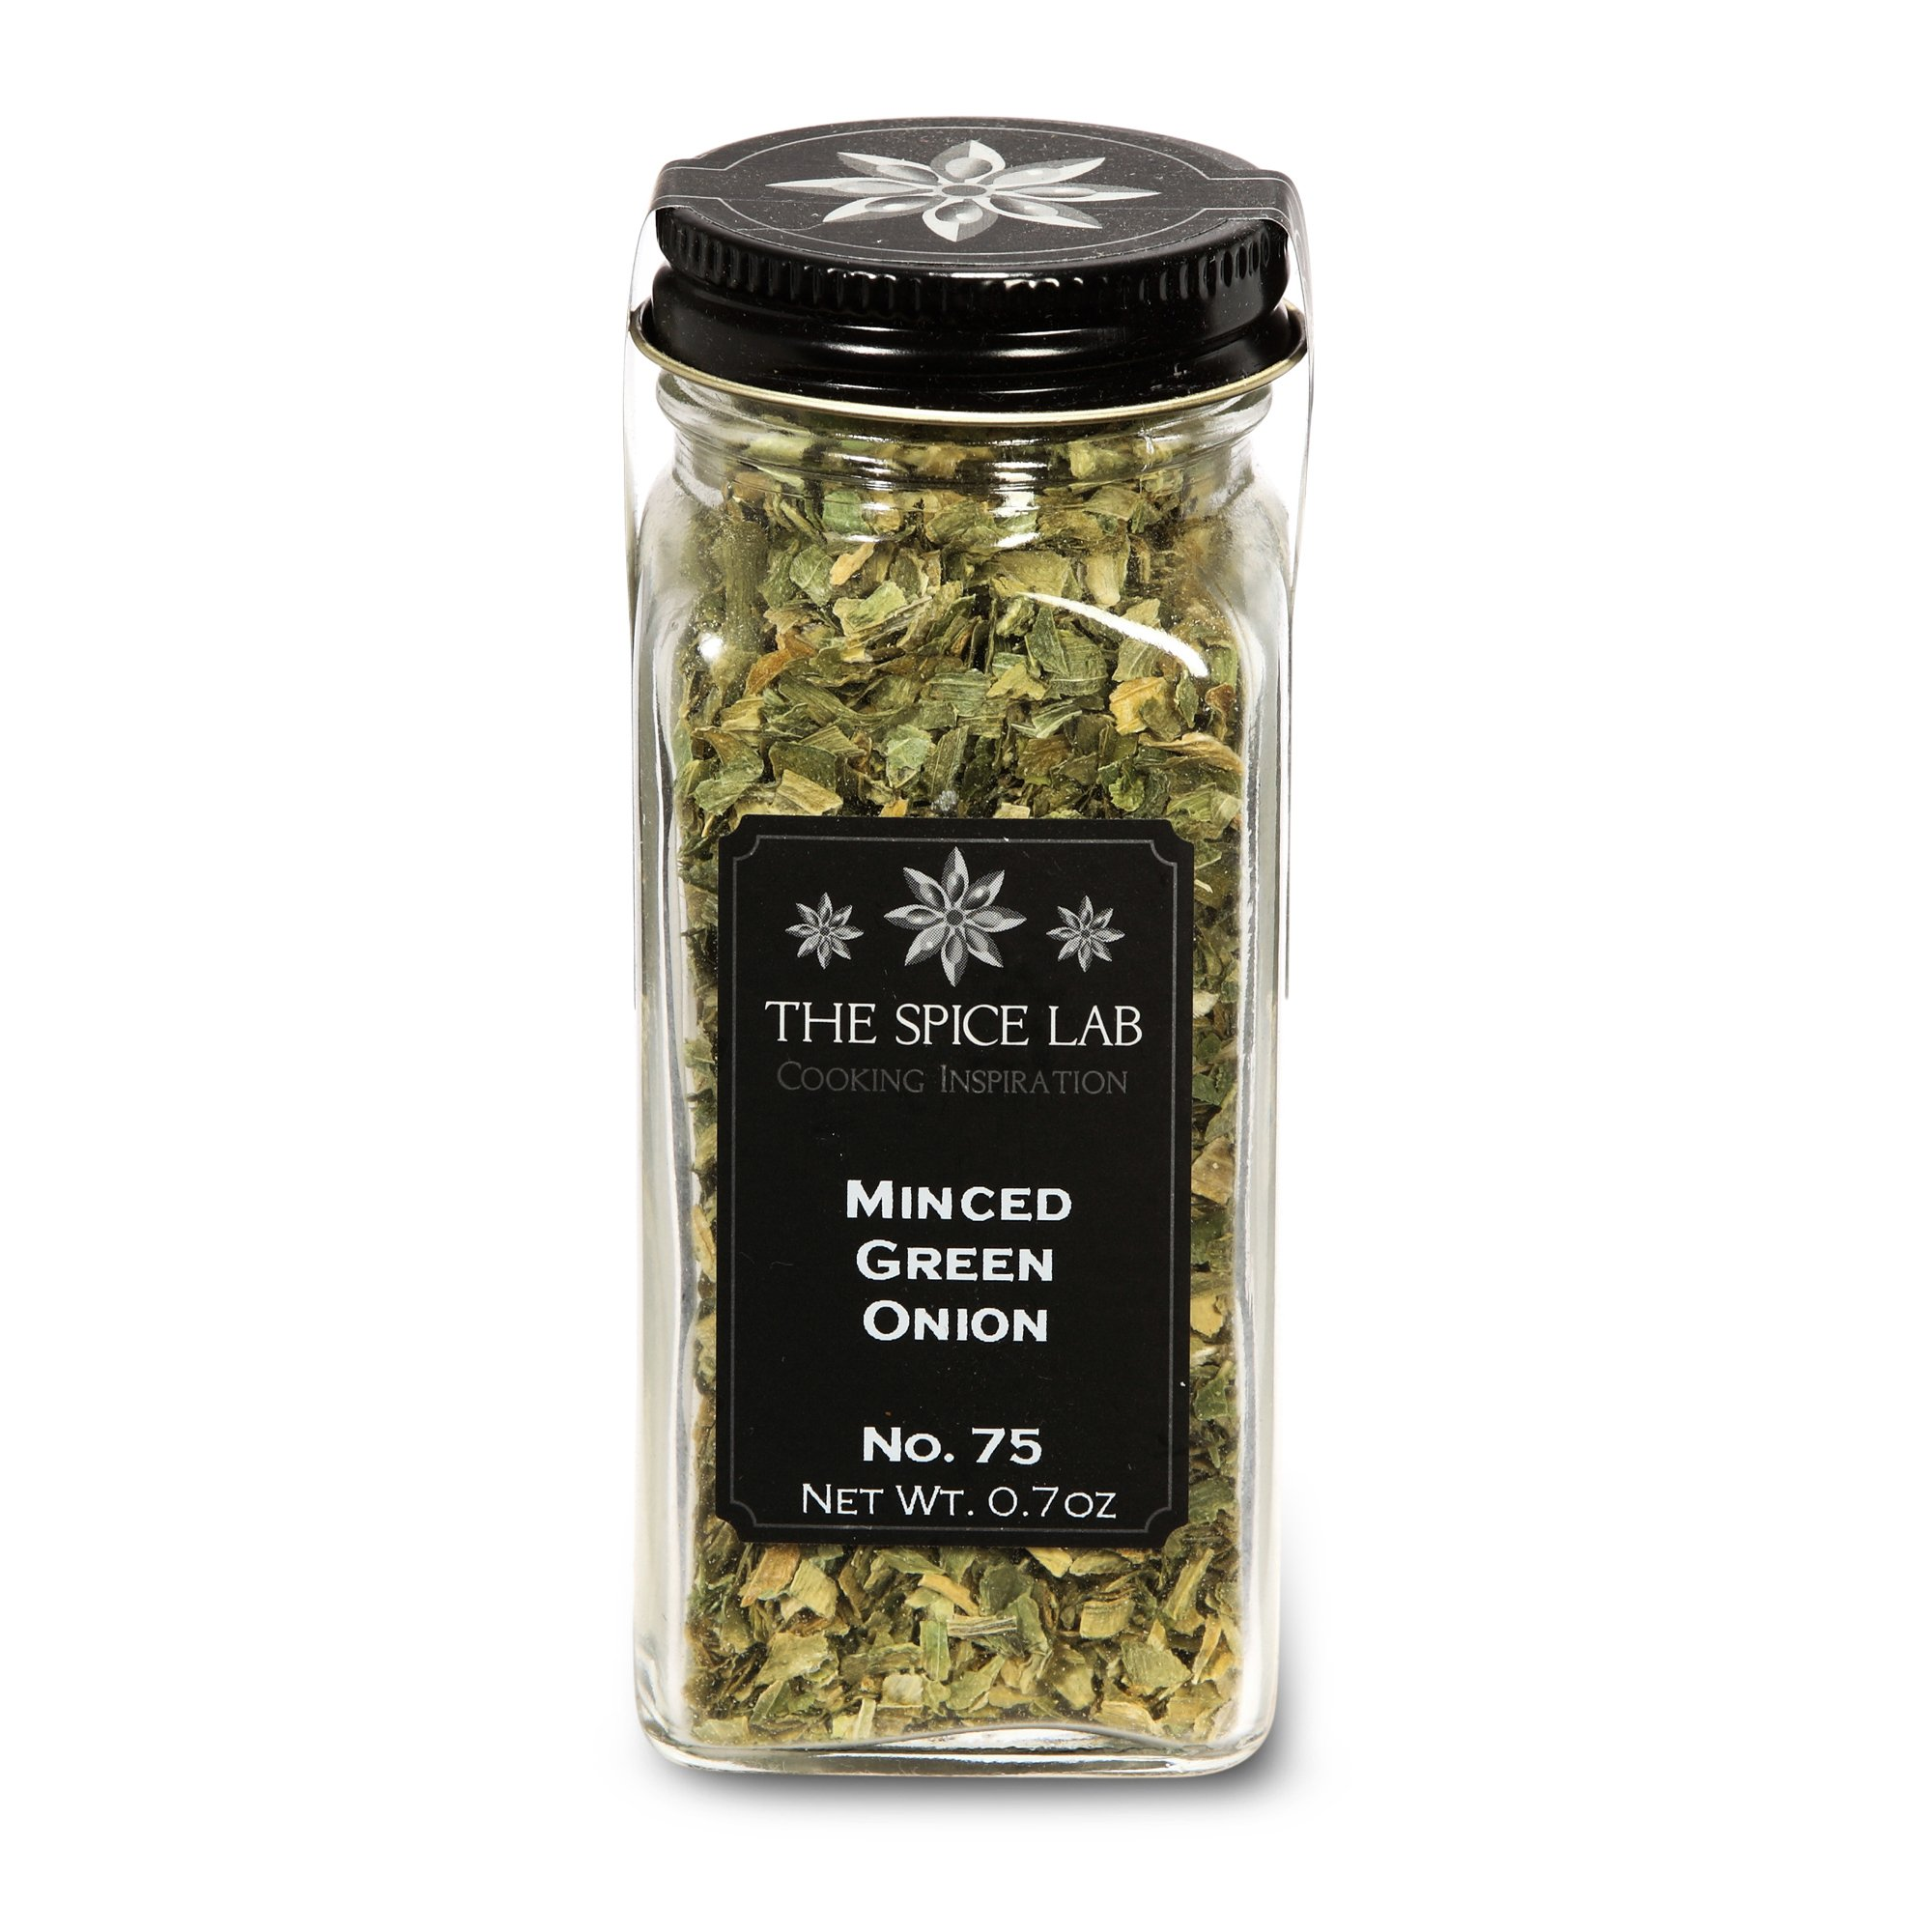 The Spice Lab No. 75 - Minced Green Onion - Kosher Gluten-Free Non-GMO All Natural Spice - French Jar